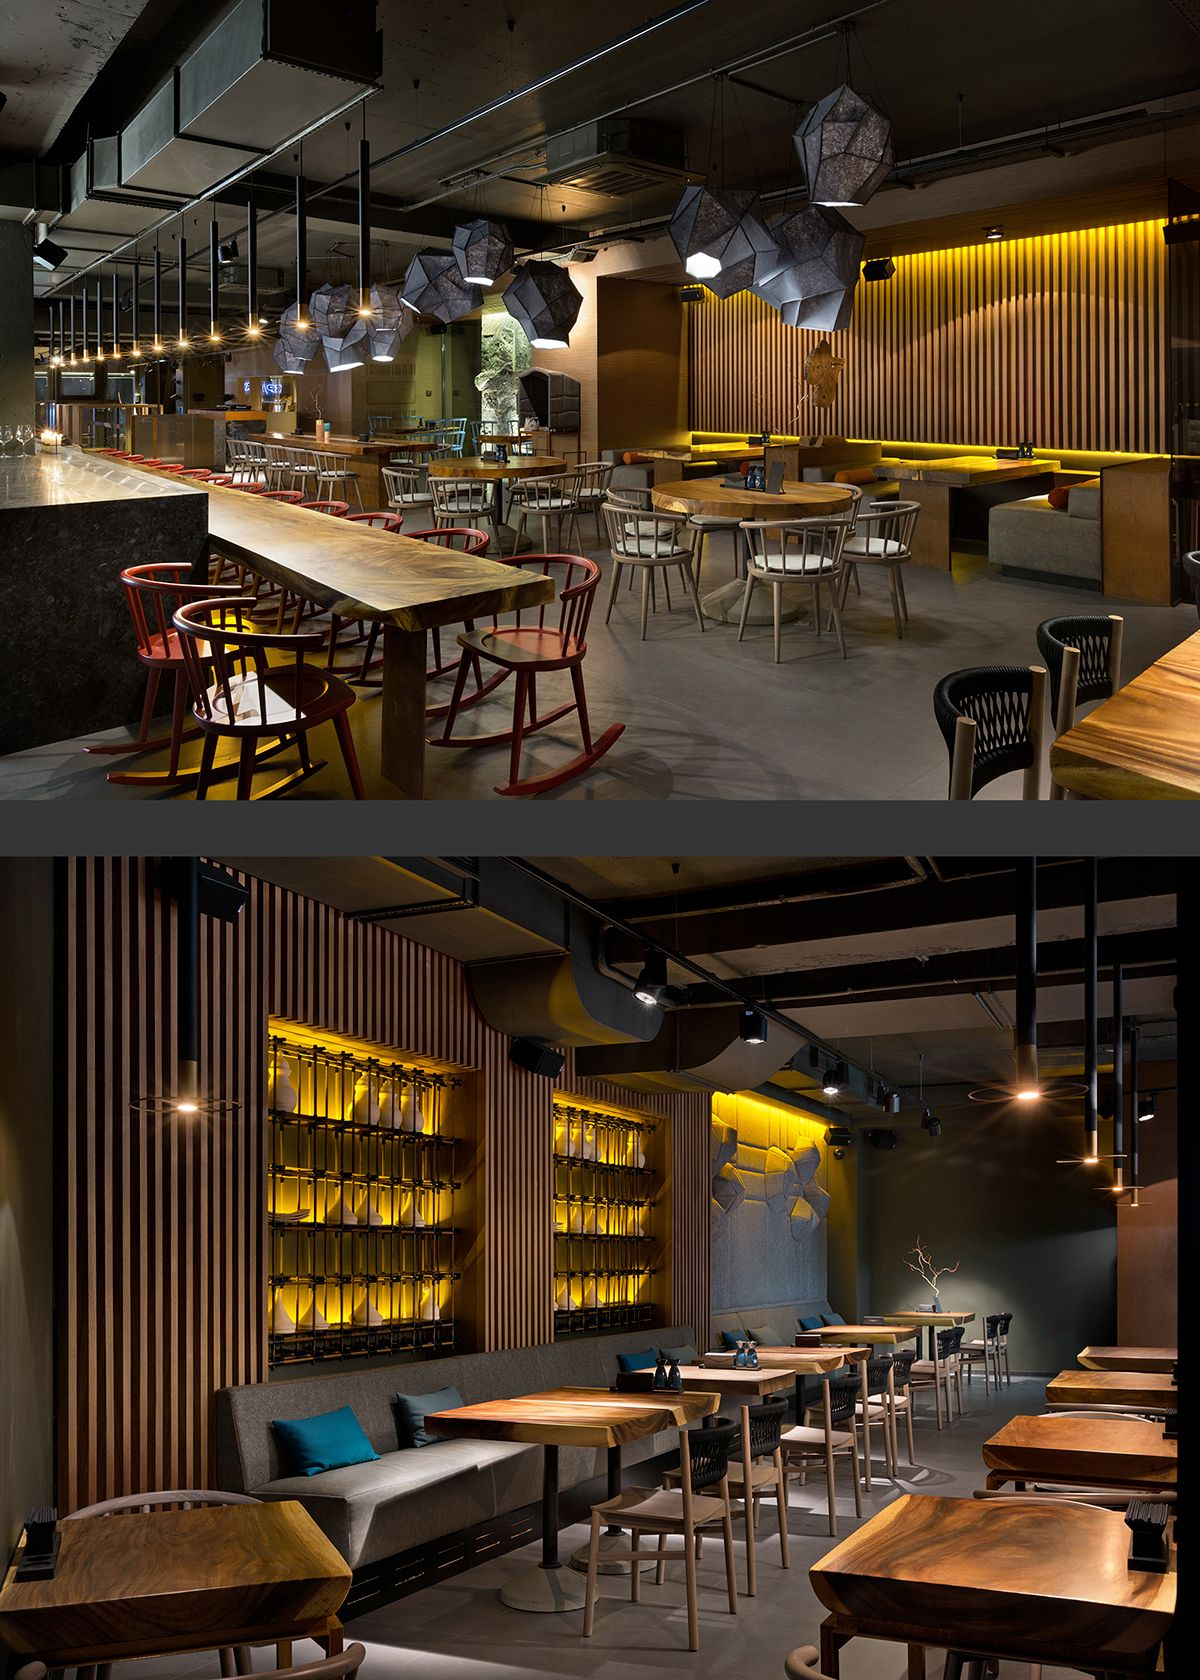 New pan asian restaurant designed by yod design studio